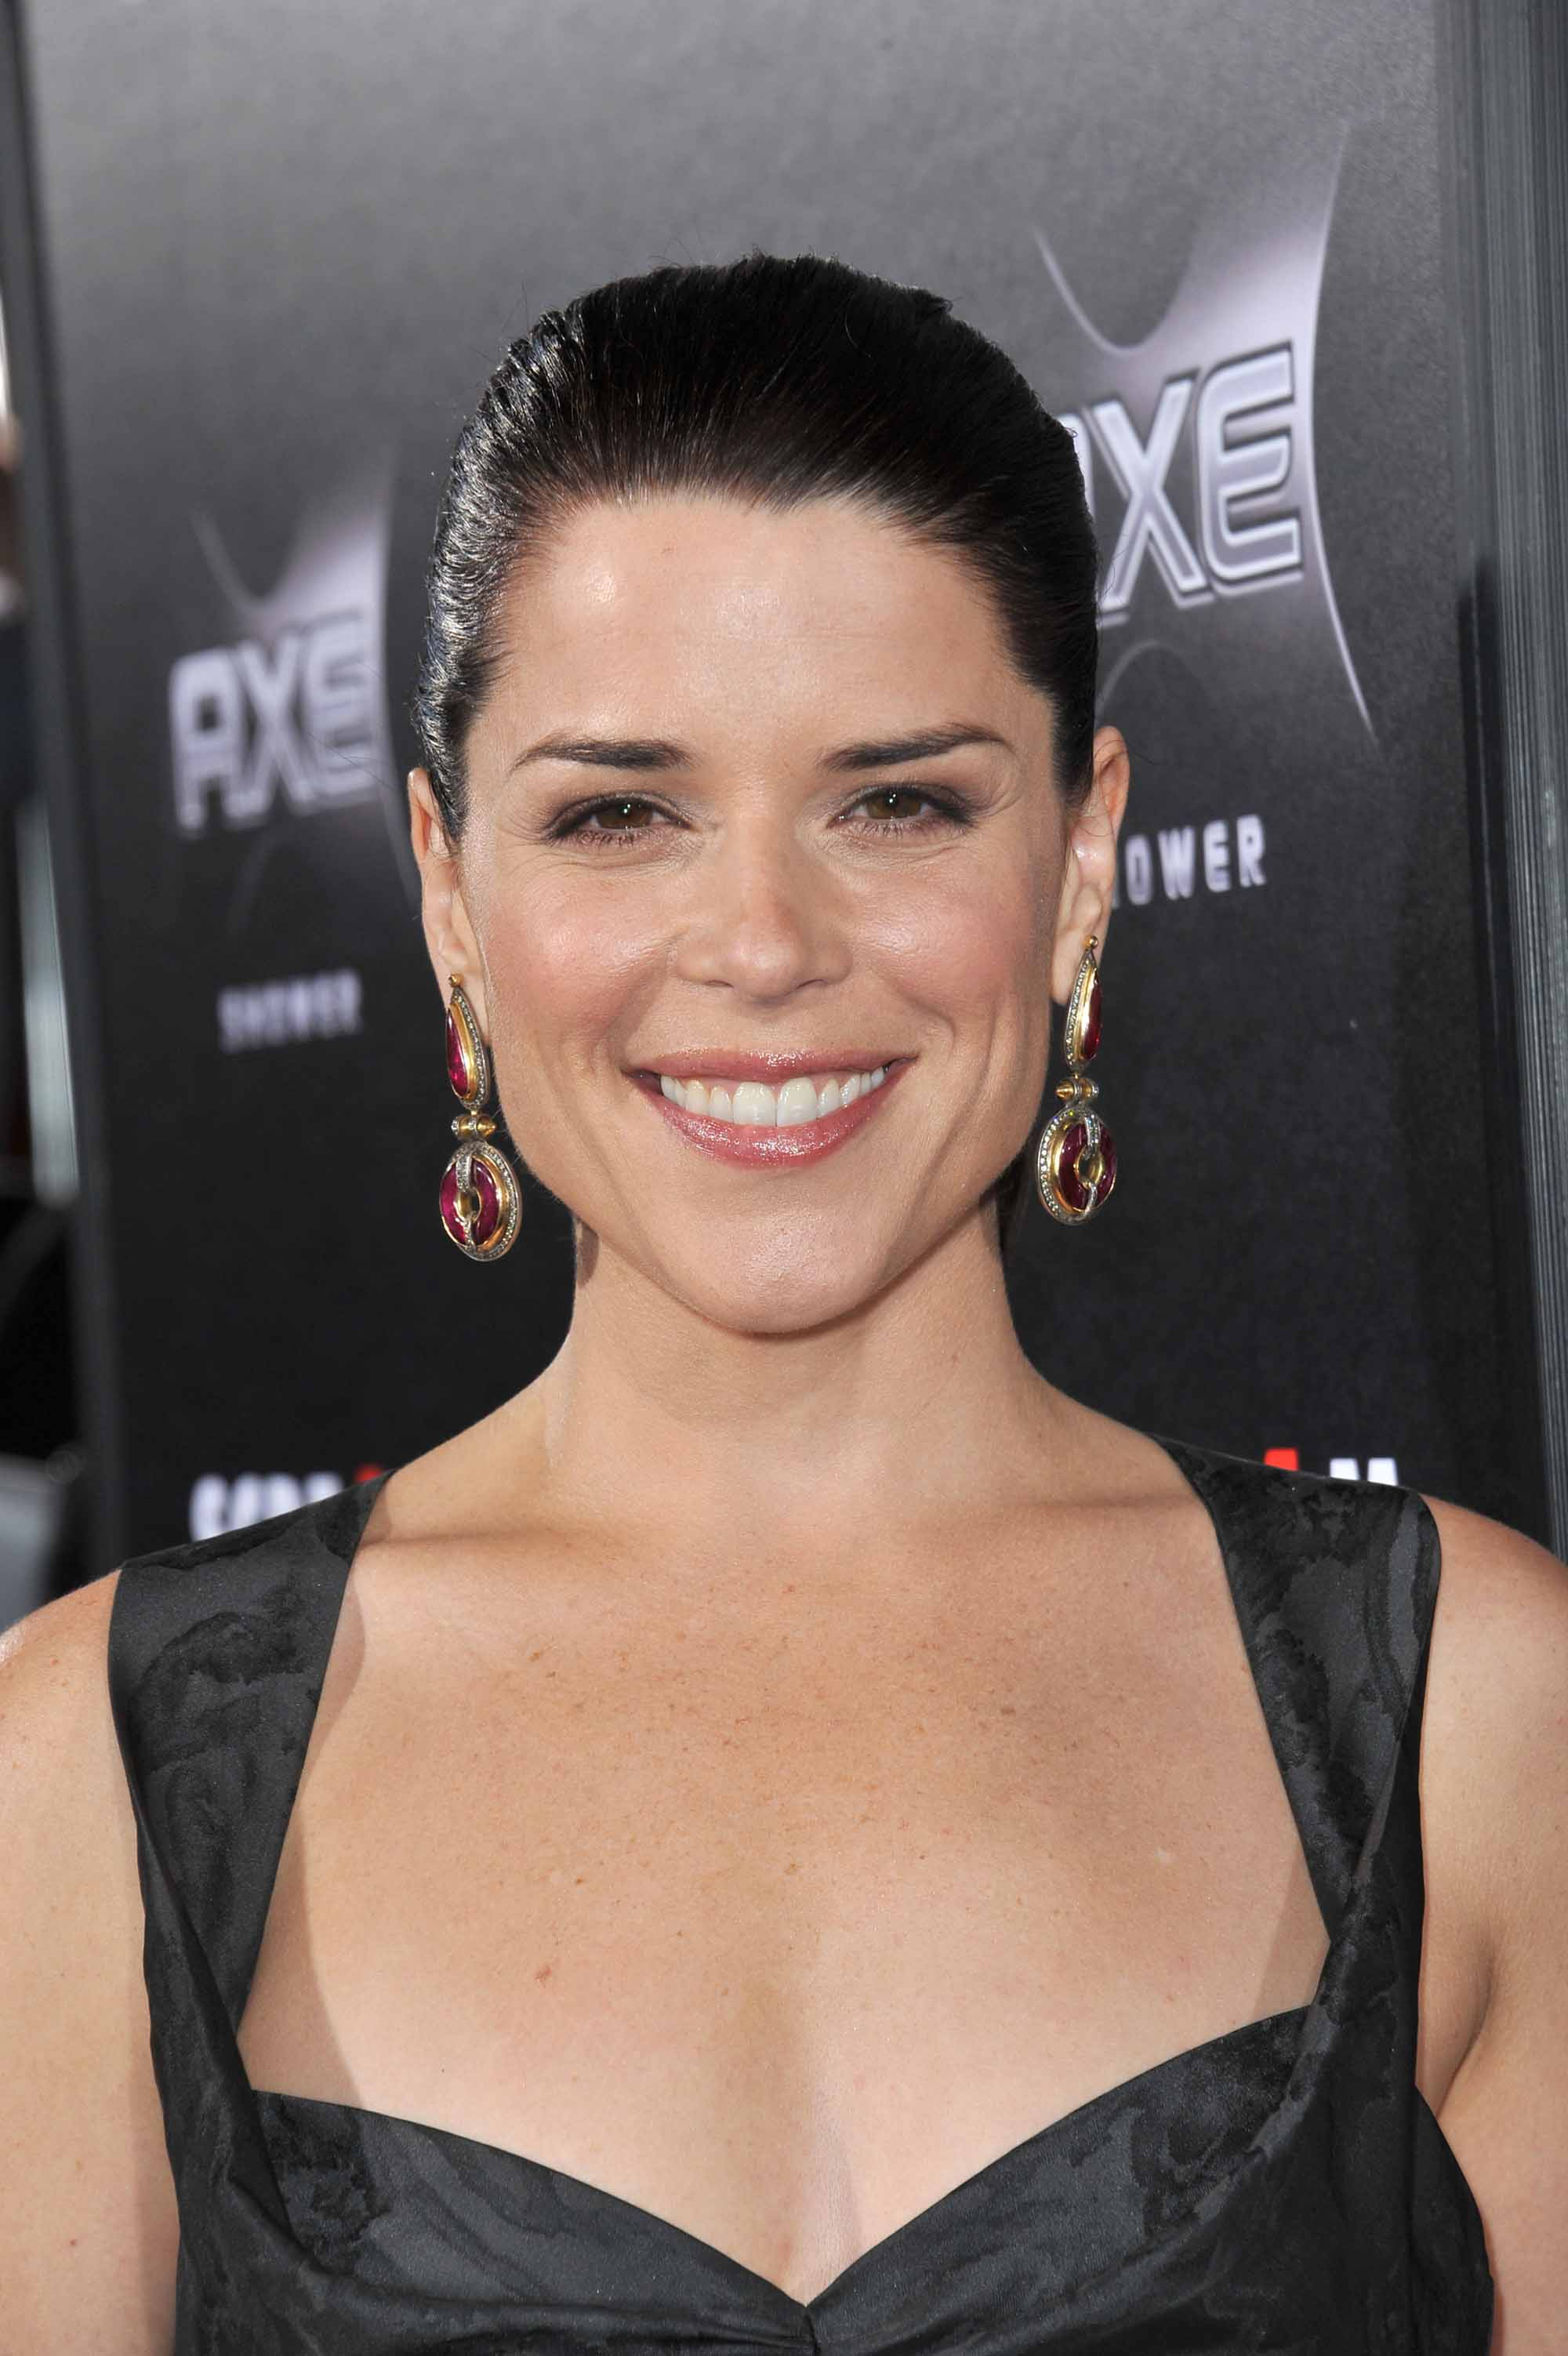 Neve Campbell The Canadian Encyclopedia